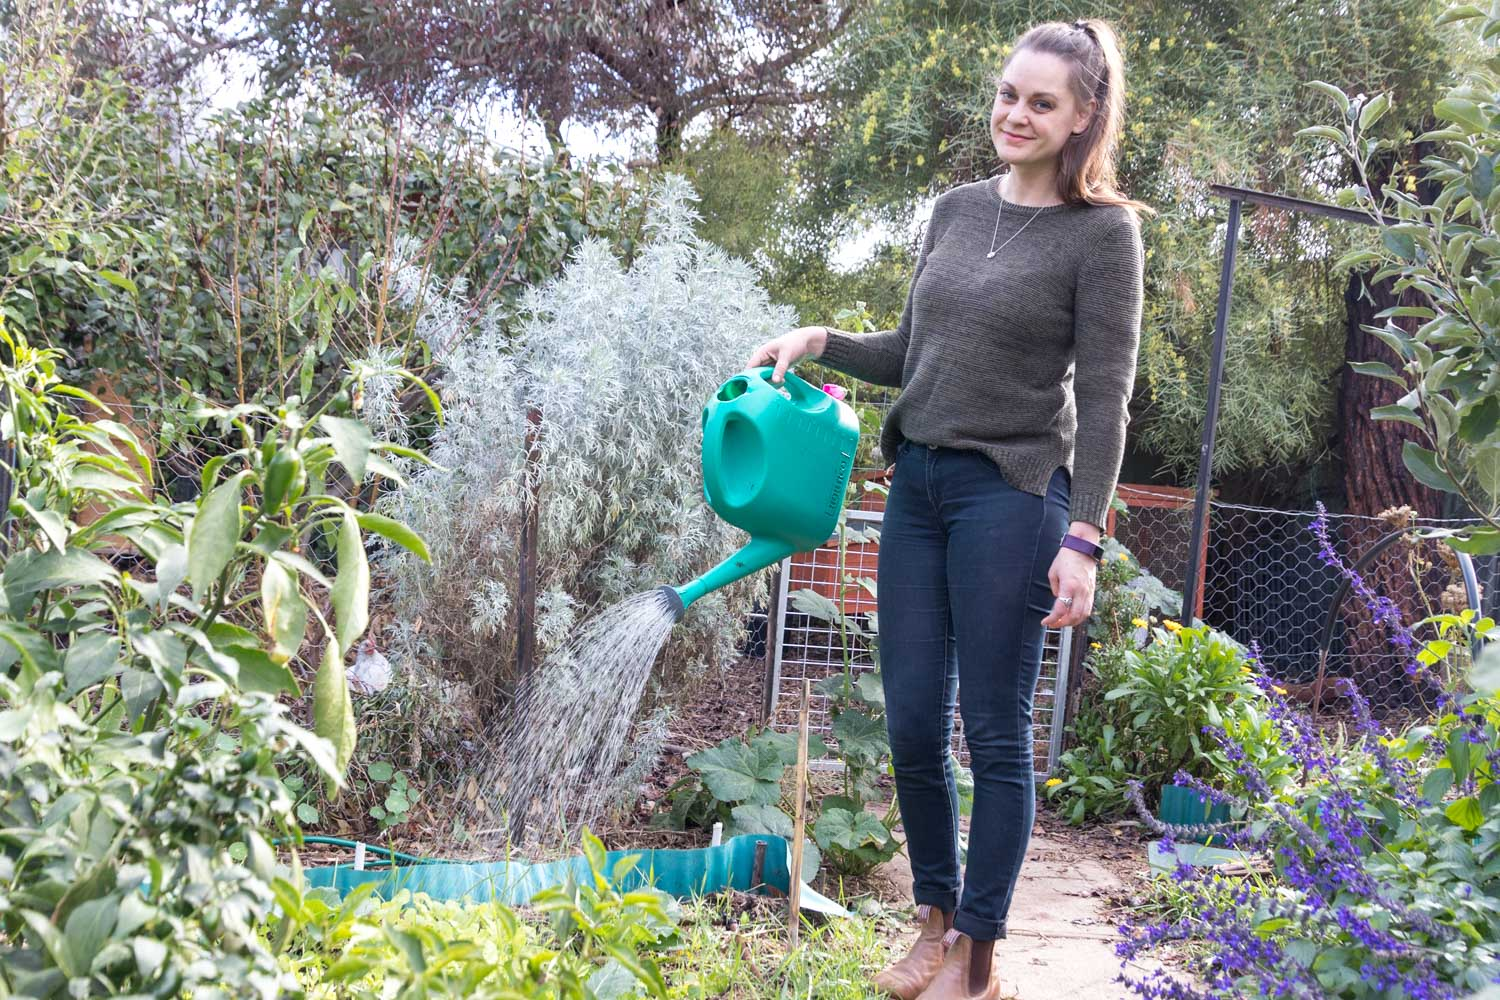 Me fertilising my garden with a green watering can and homemade weed tea.